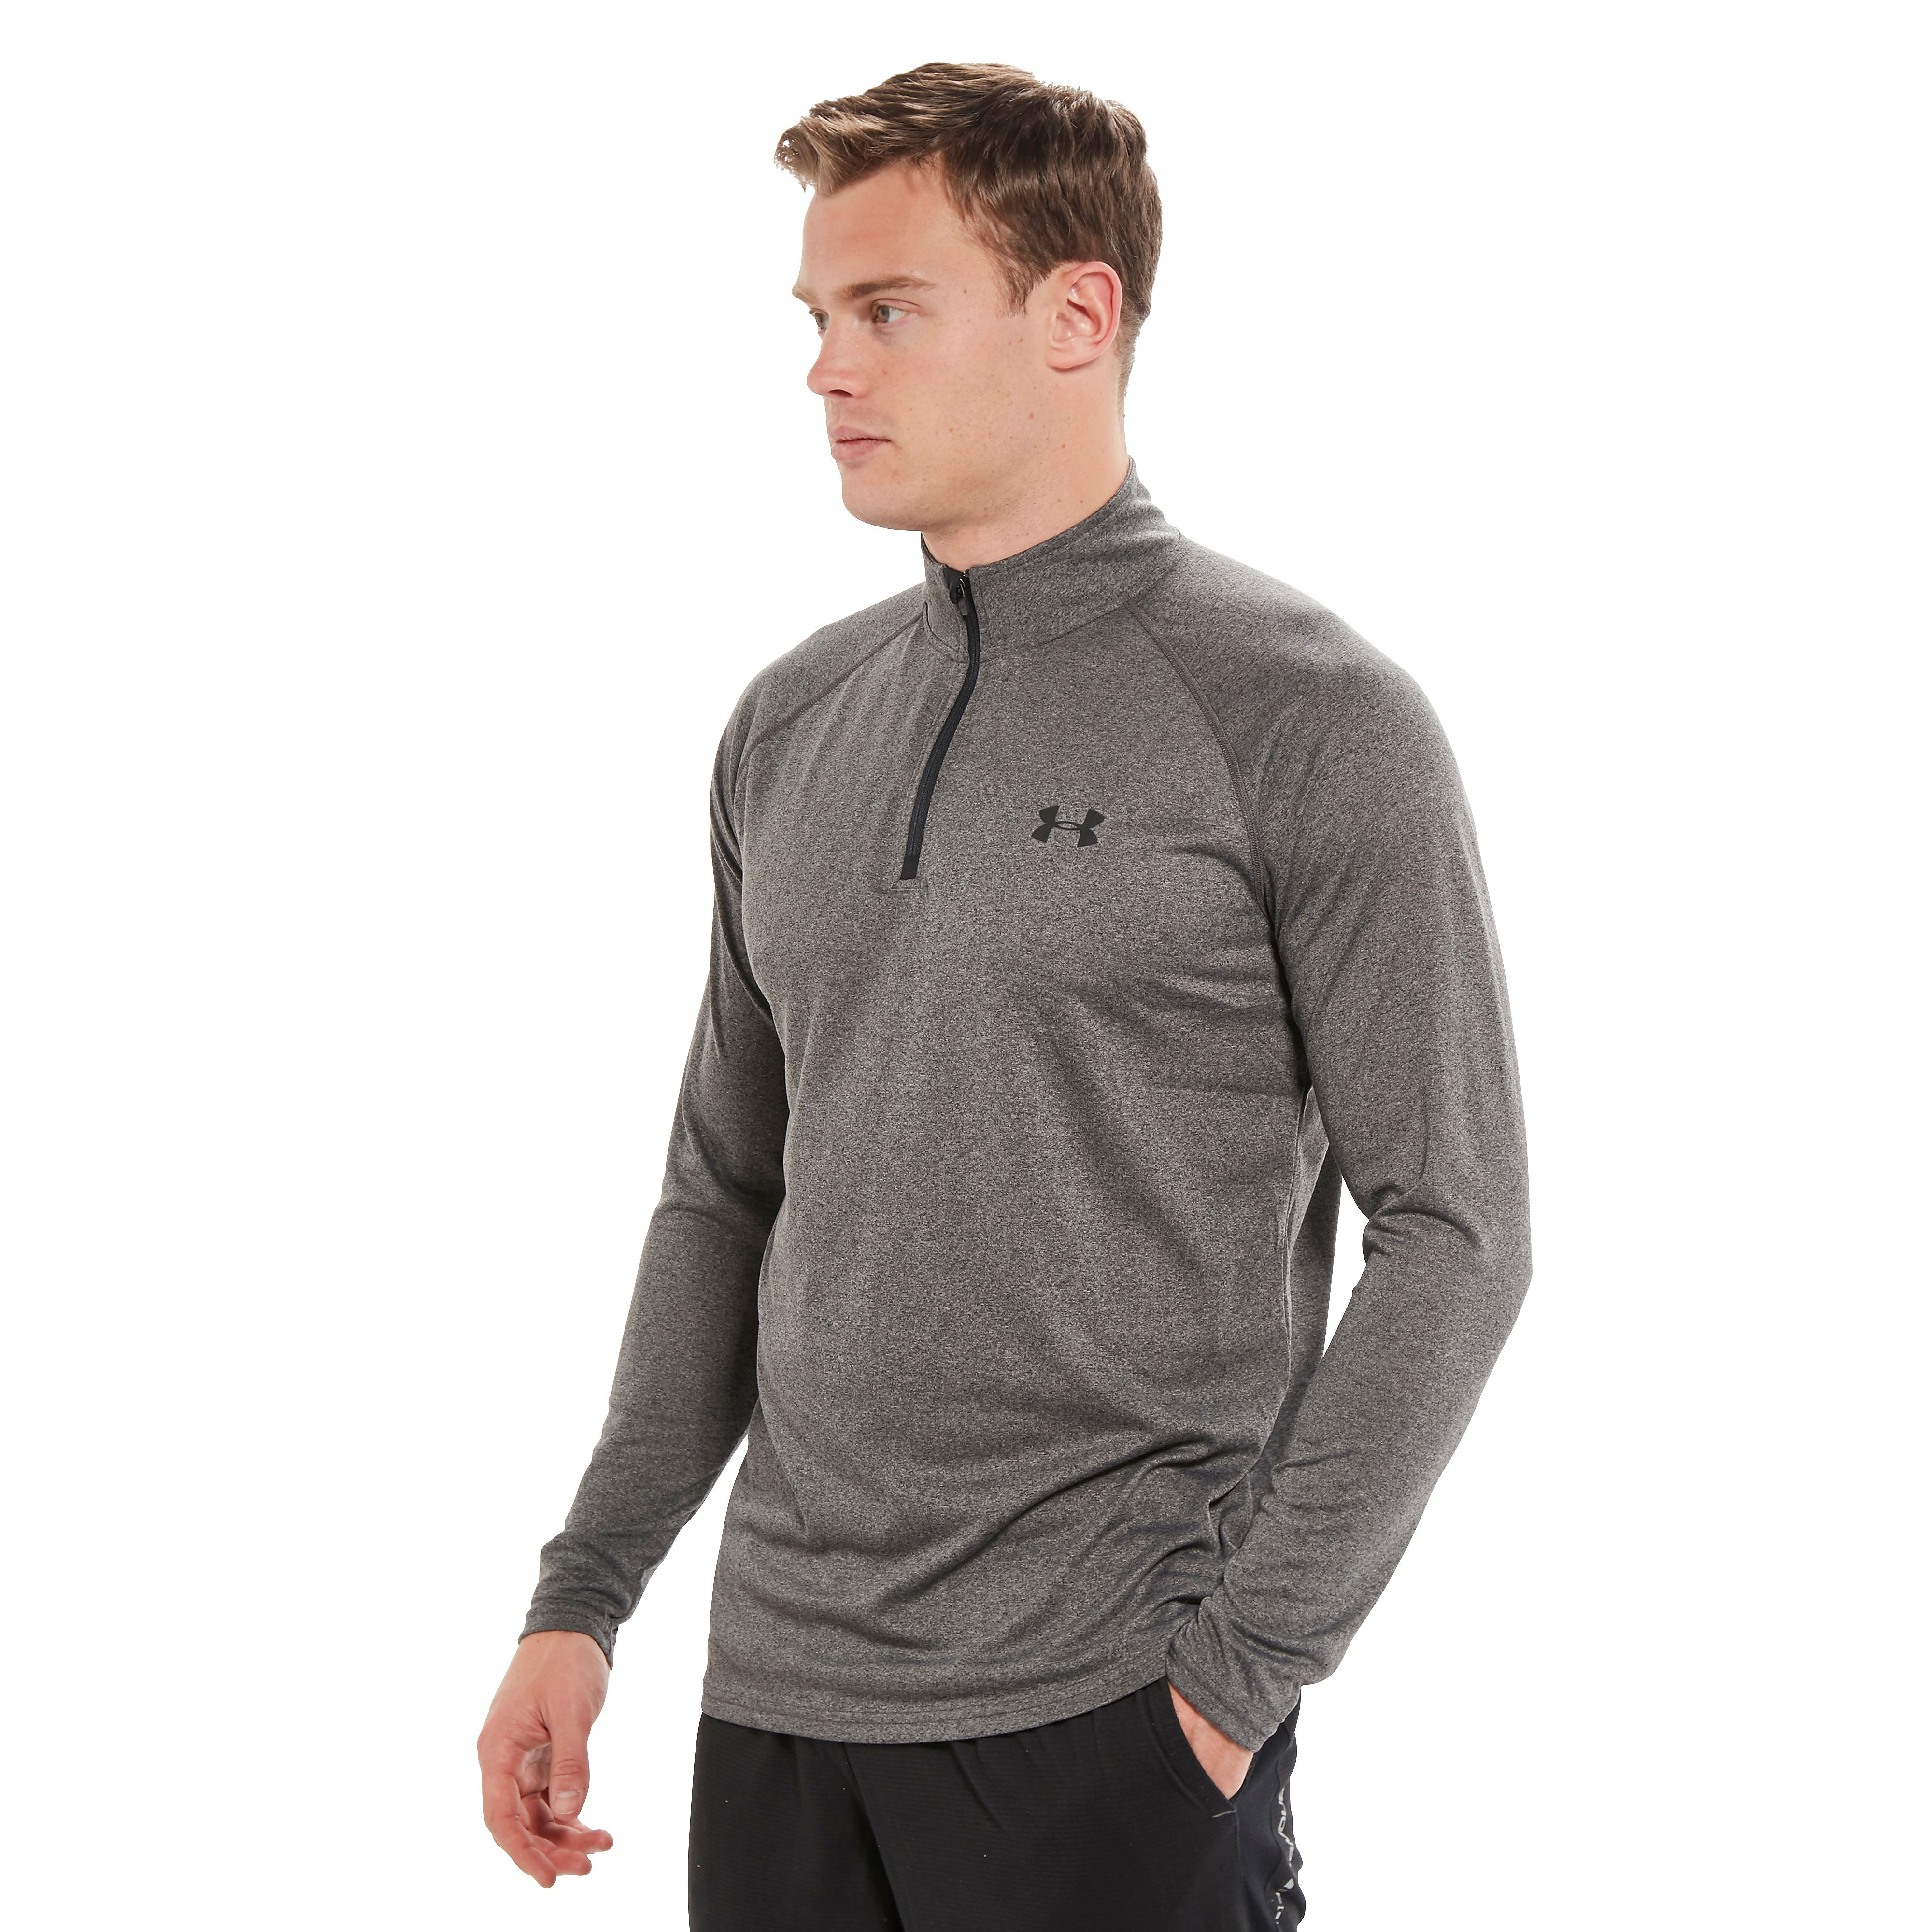 Under Armour Tech 1/4 Zip Men's Top